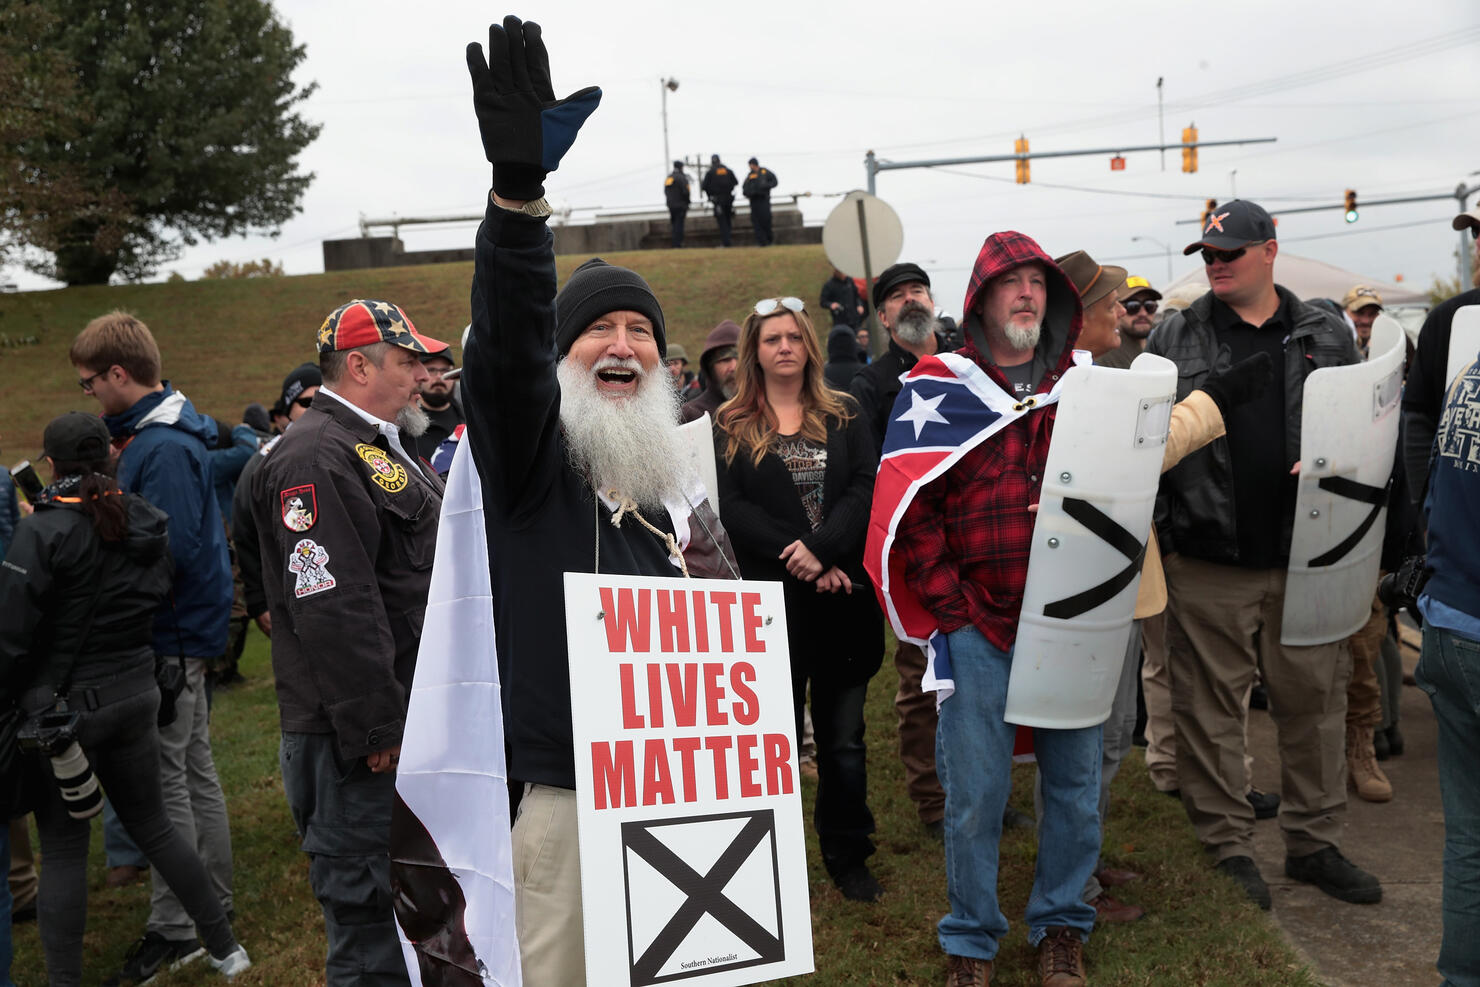 """White Nationalists Hold """"White Lives Matter"""" Rallies In Tennessee, Counter Protests Ensue"""